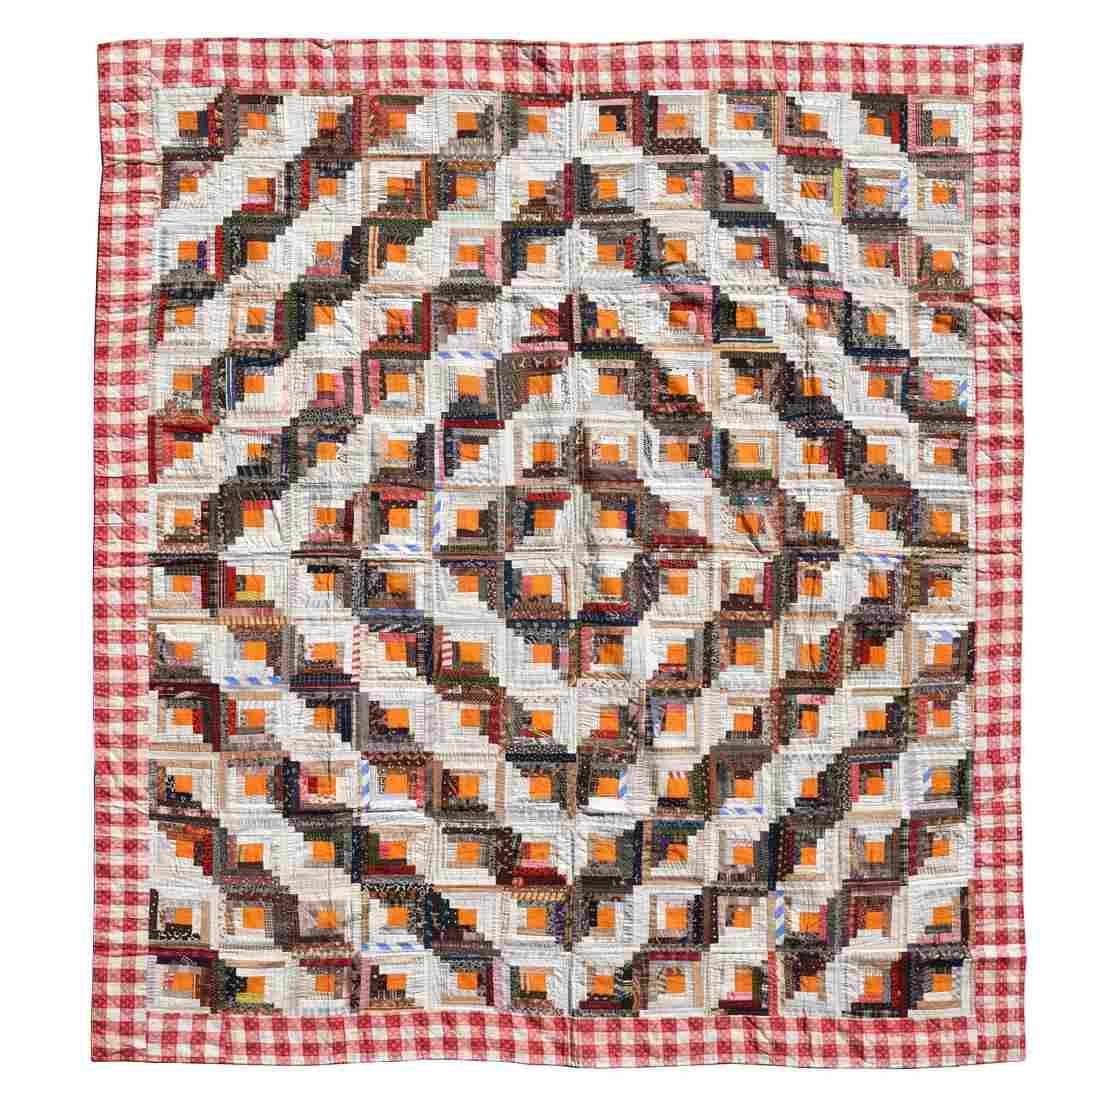 Pieced Log Cabin Quilt, lined with red gingham cotton